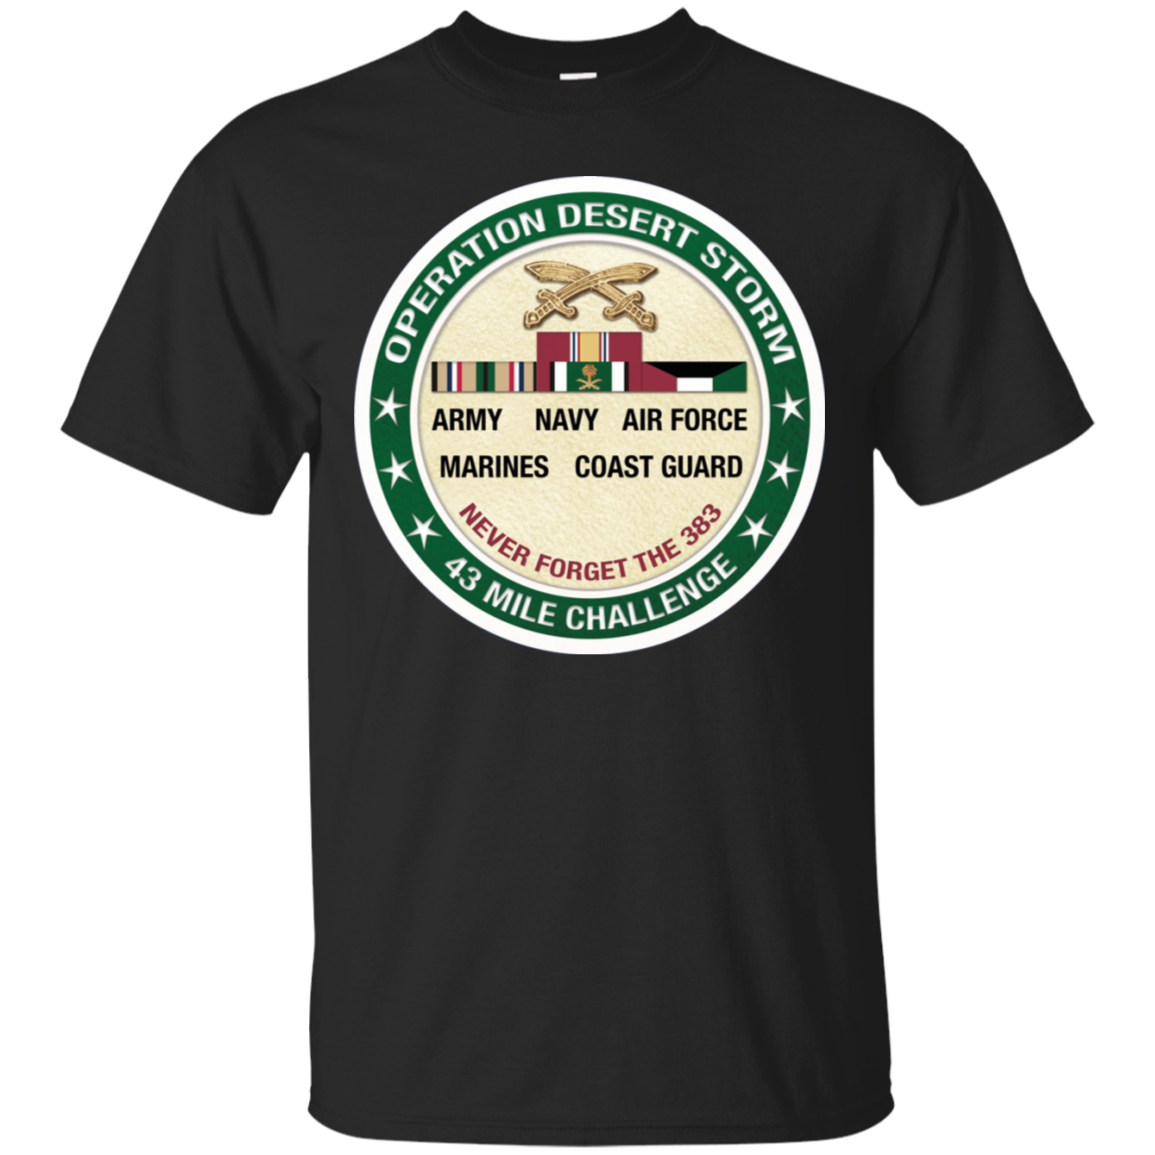 Operation Desert Storm Challenge Short-Sleeve Unisex T-Shirt